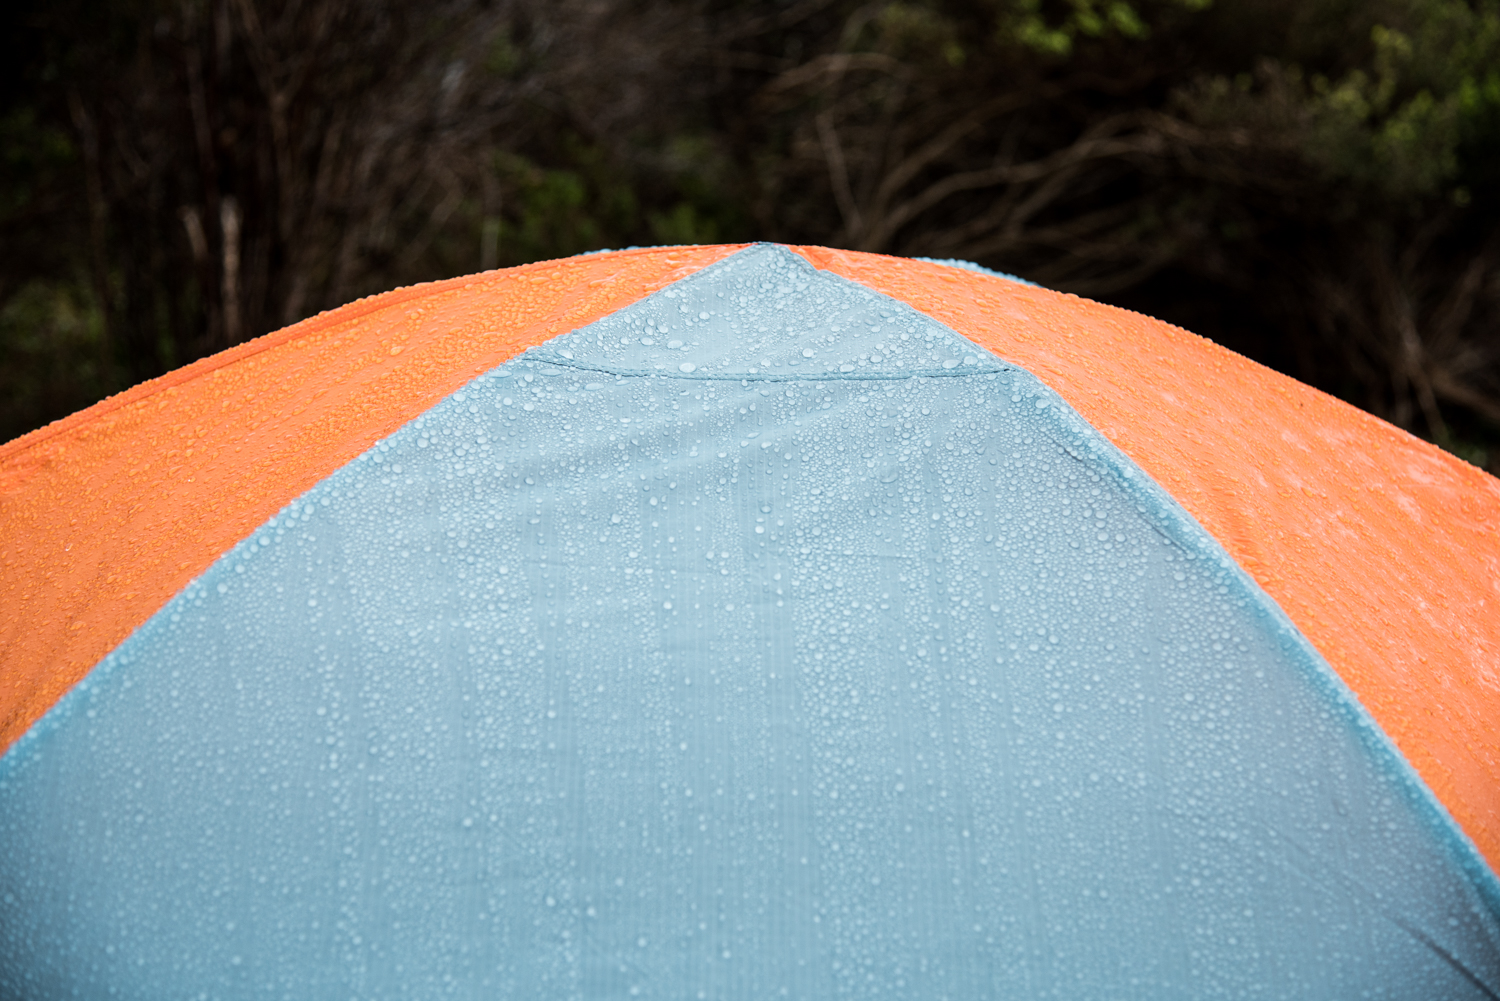 During lots of rain, the tent stayed dry - on the inside!